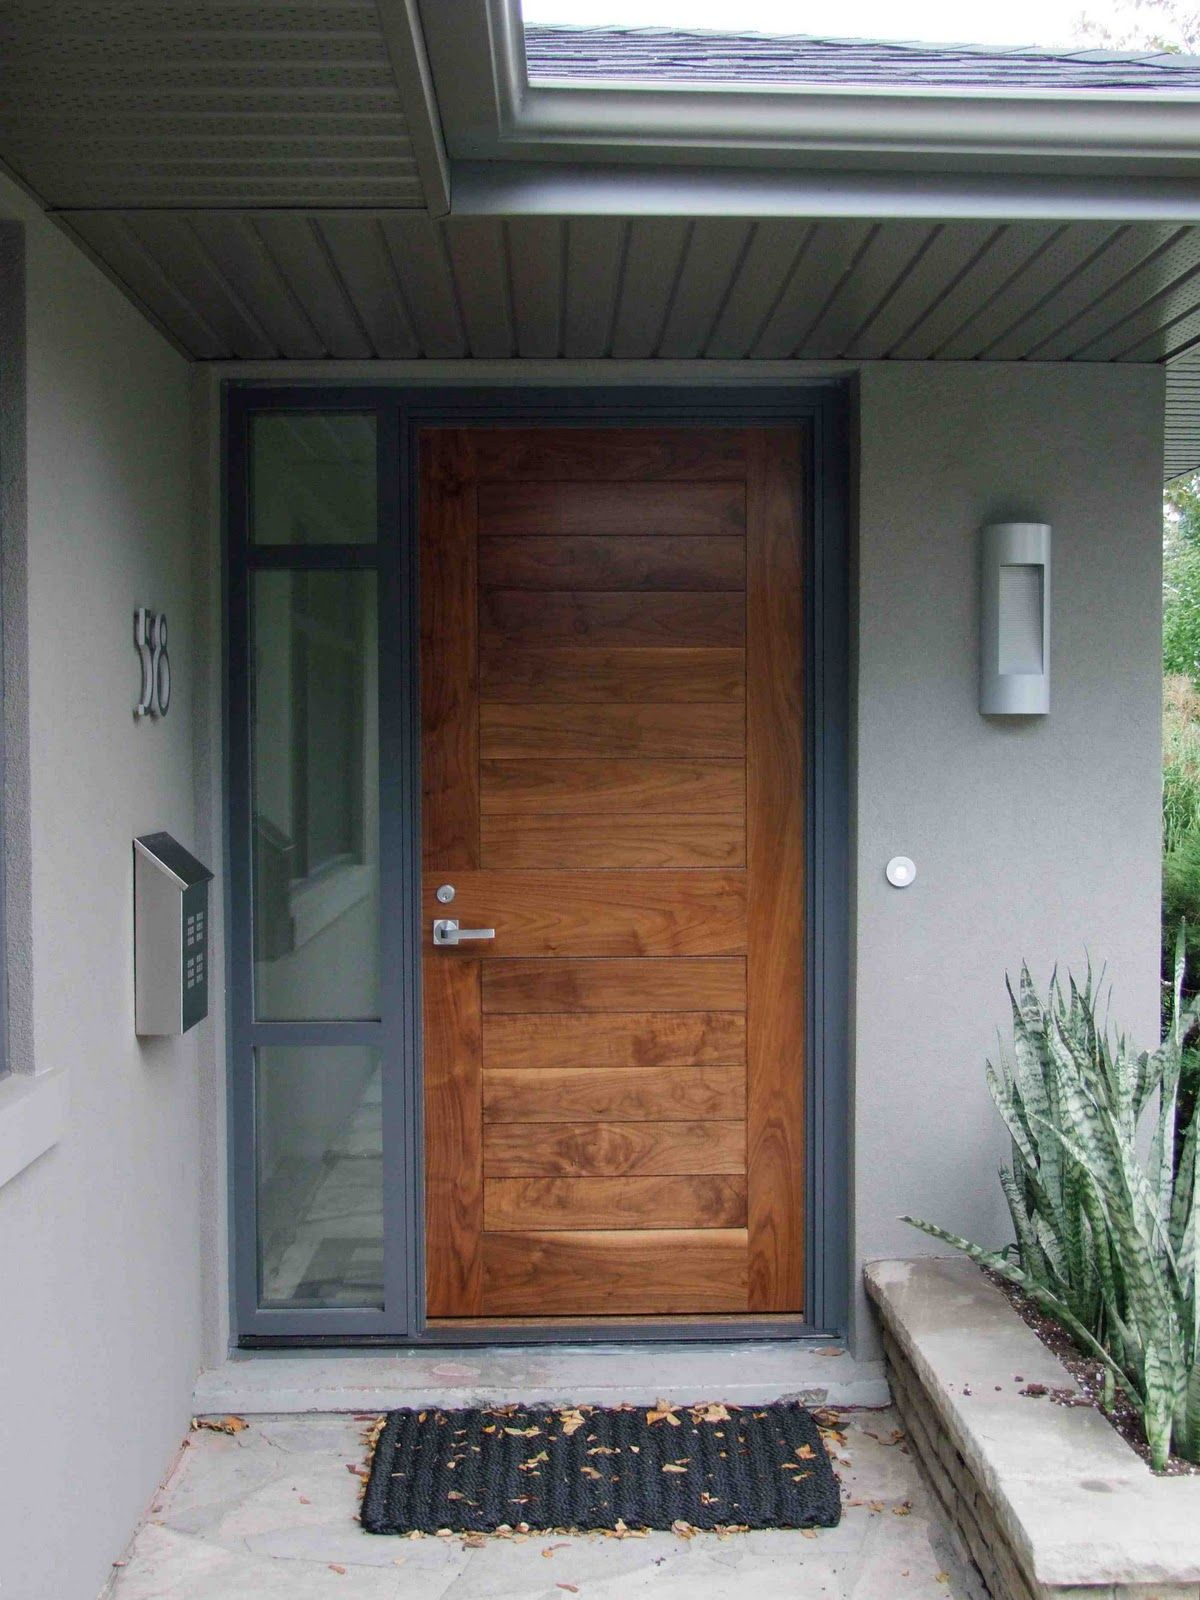 door stunning natural brown single modern front door with nickel knob handle door also grey clear glass single entrance window frames as well as grey